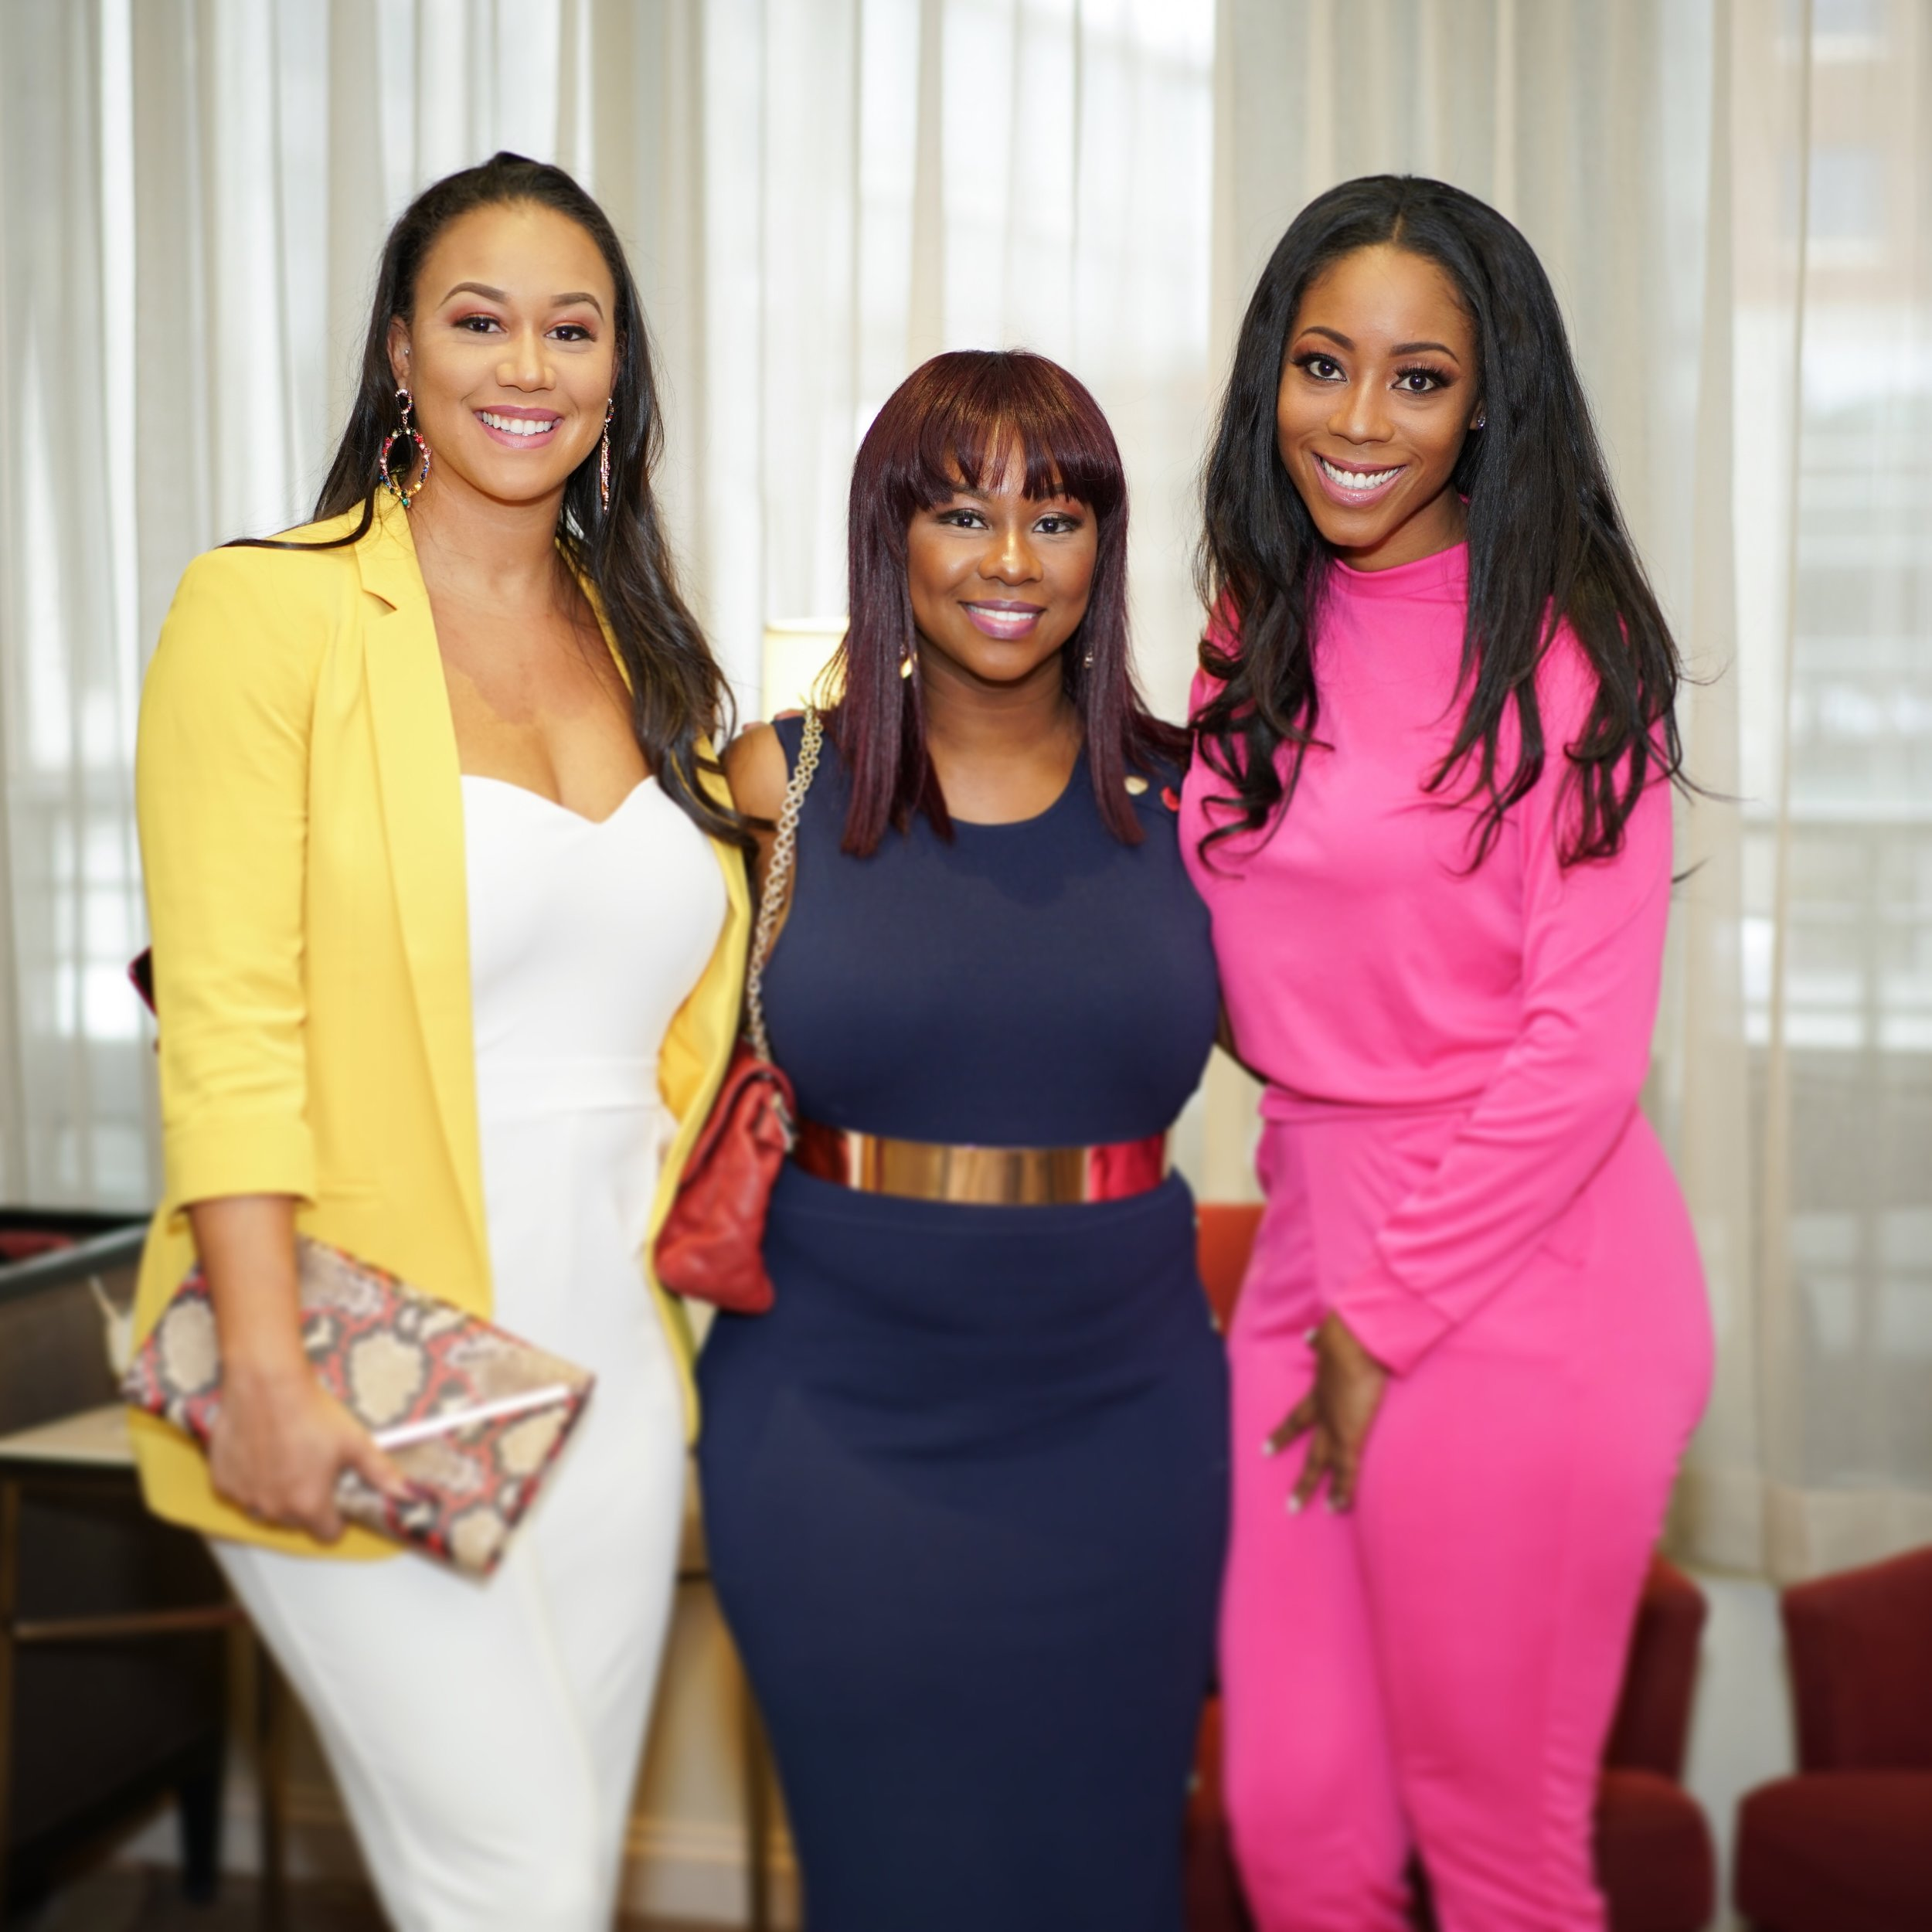 Business Mogul Launch event: Pictured (left to right) Spring 19 Cover Feature, Shonda Draughn, Dr. Sheria D. Rowe, K97.5 Personality, Autumn Joi